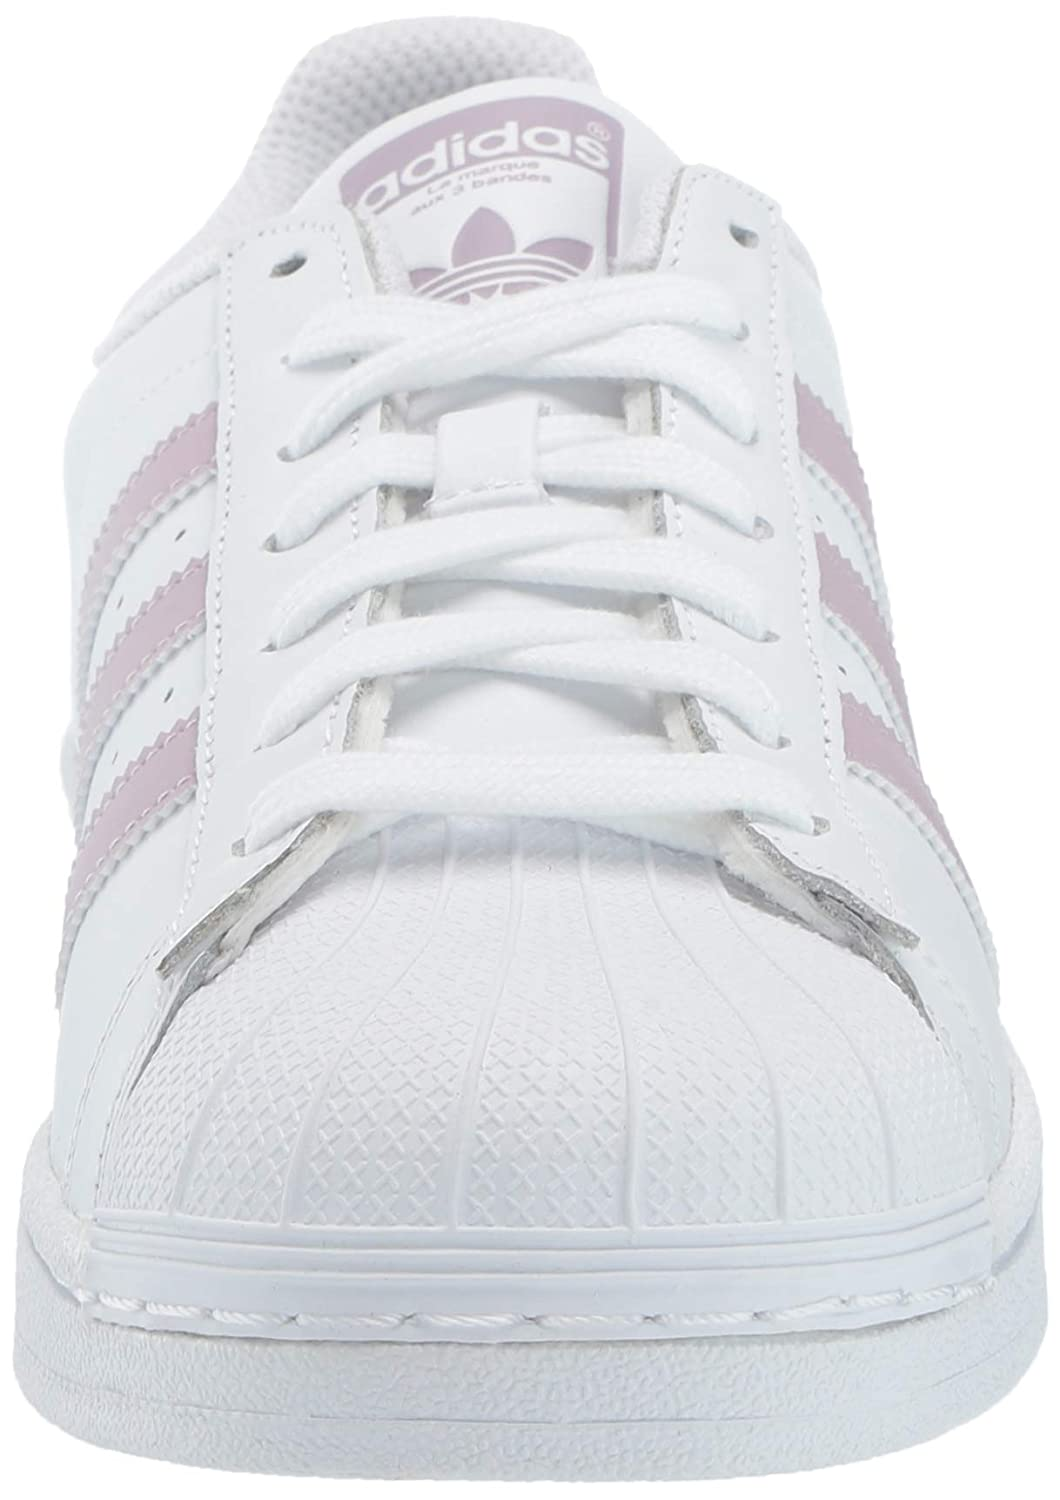 21aea55e Details about adidas Superstar Women's Fashion Casual Retro Sneakers Shell  Toe